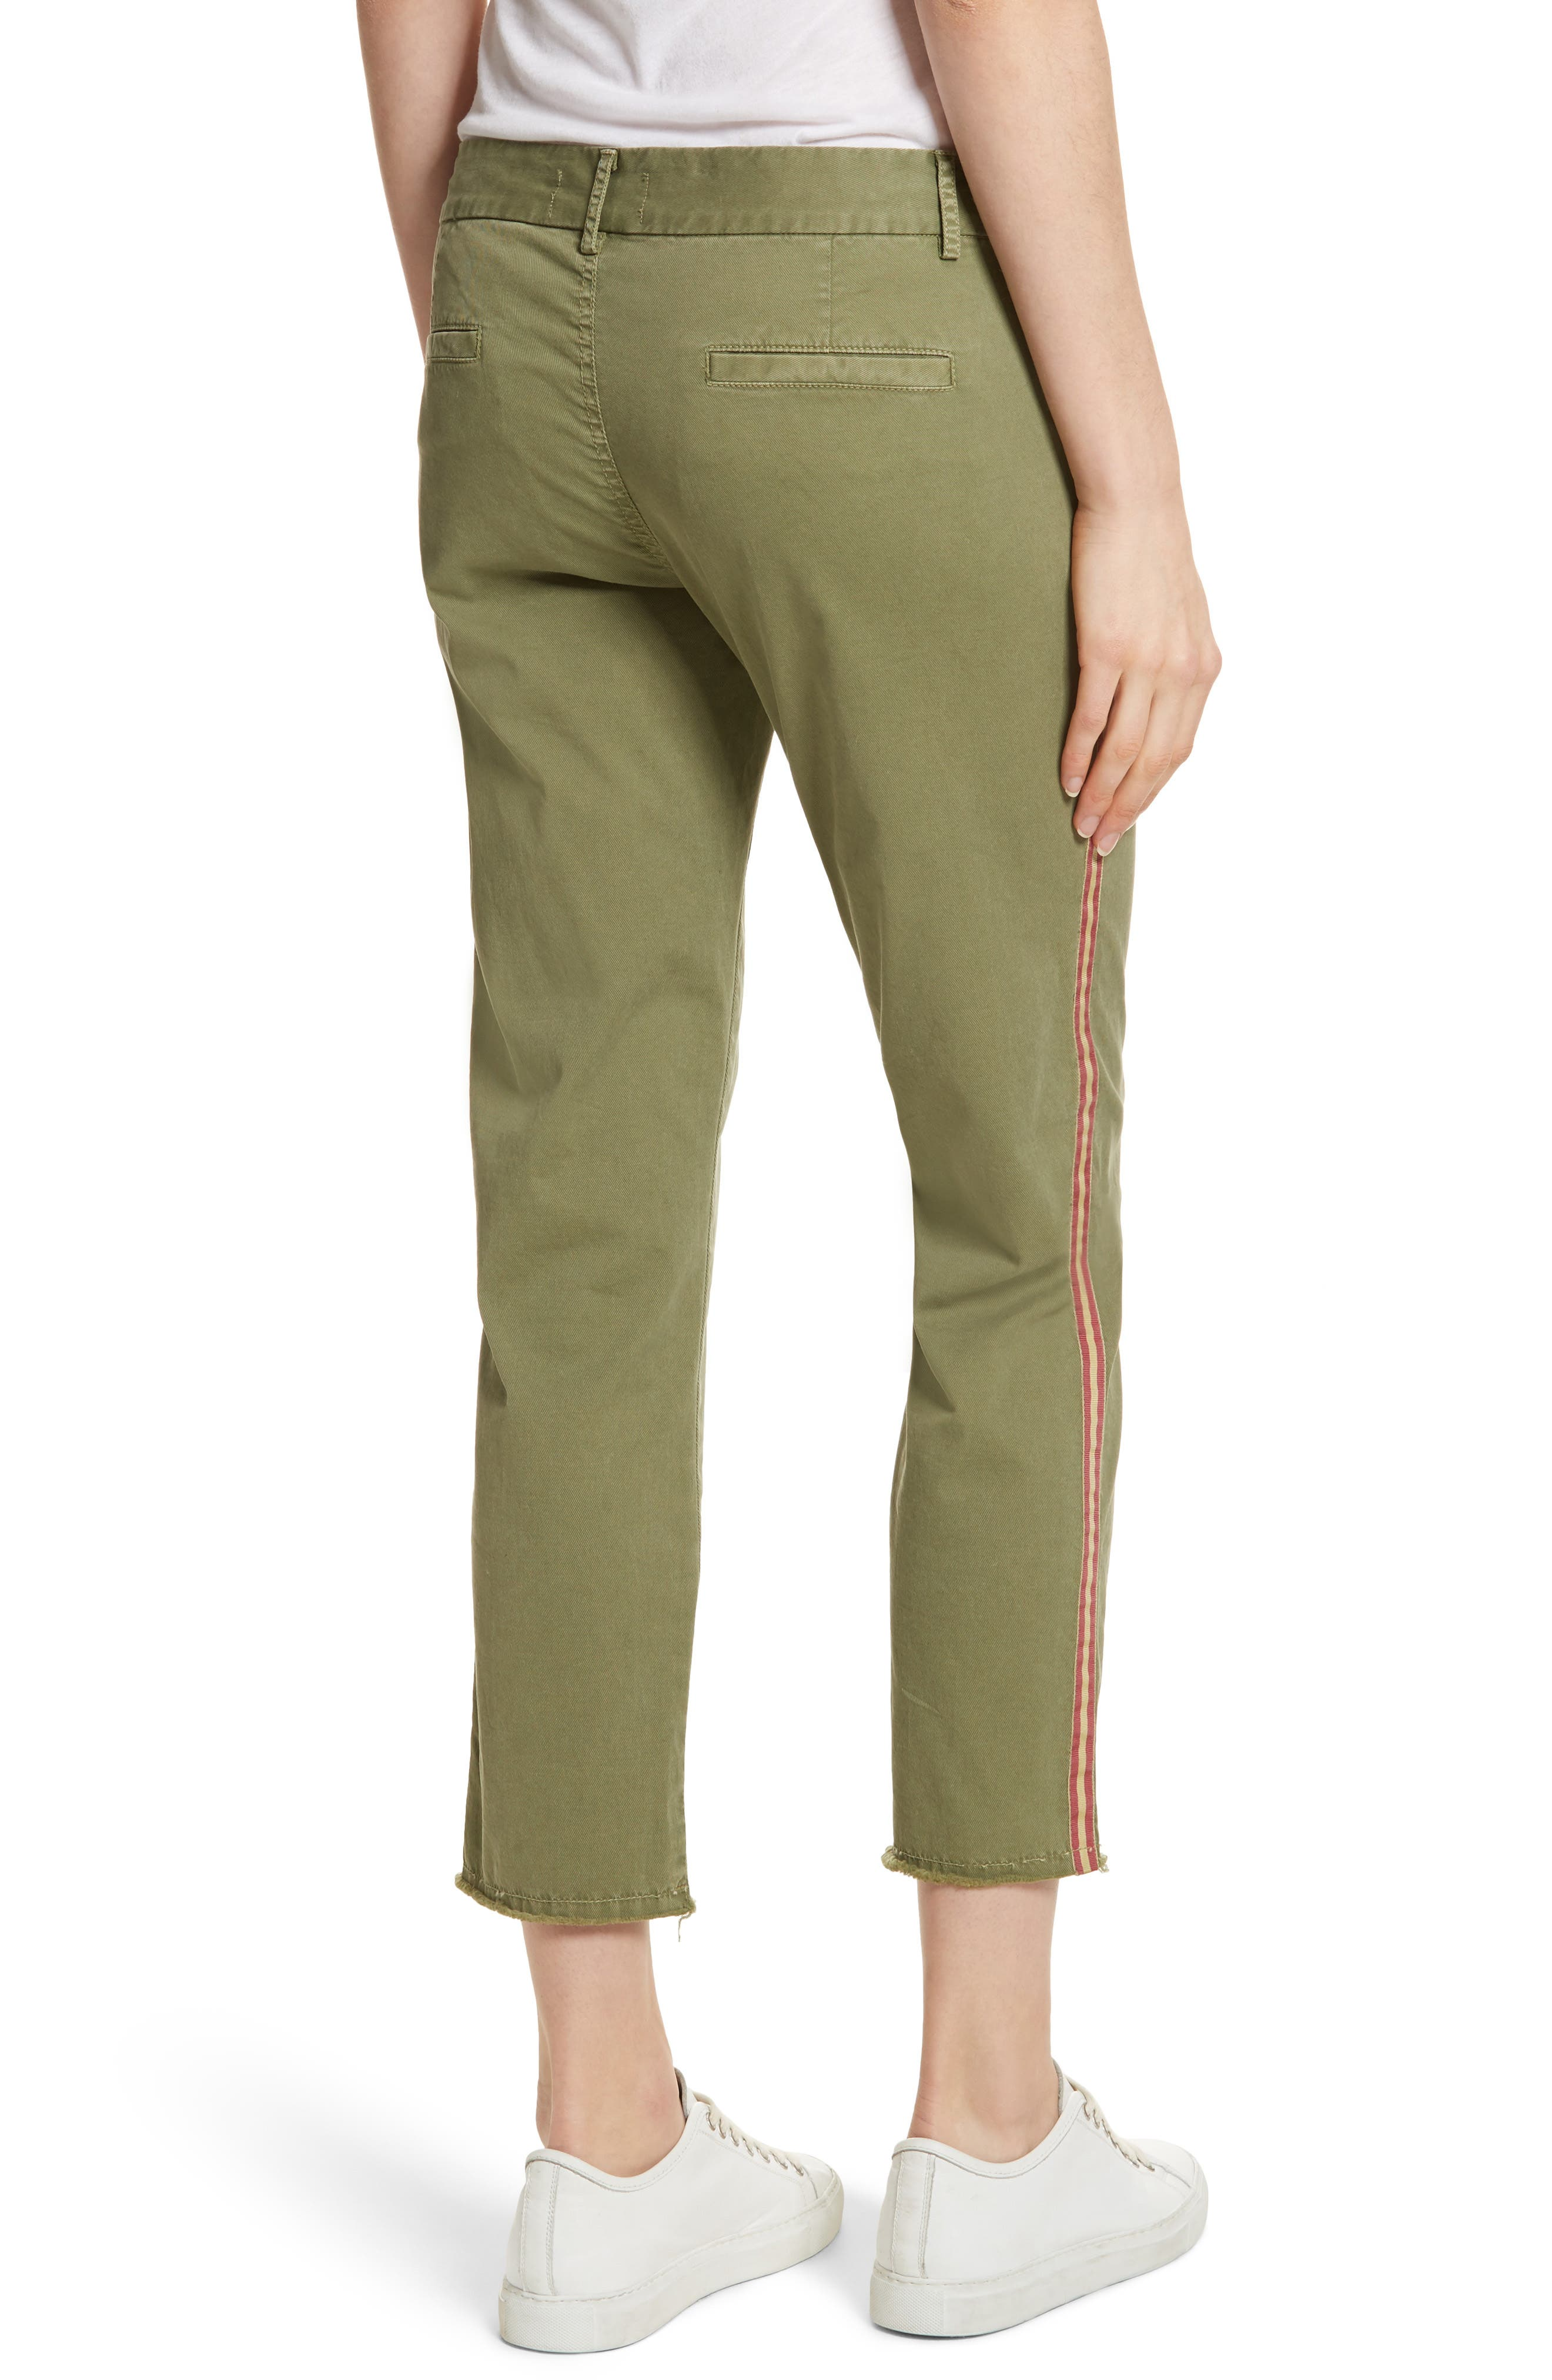 East Hampton Stretch Cotton Twill Crop Pants,                             Alternate thumbnail 2, color,                             ARMY GREEN